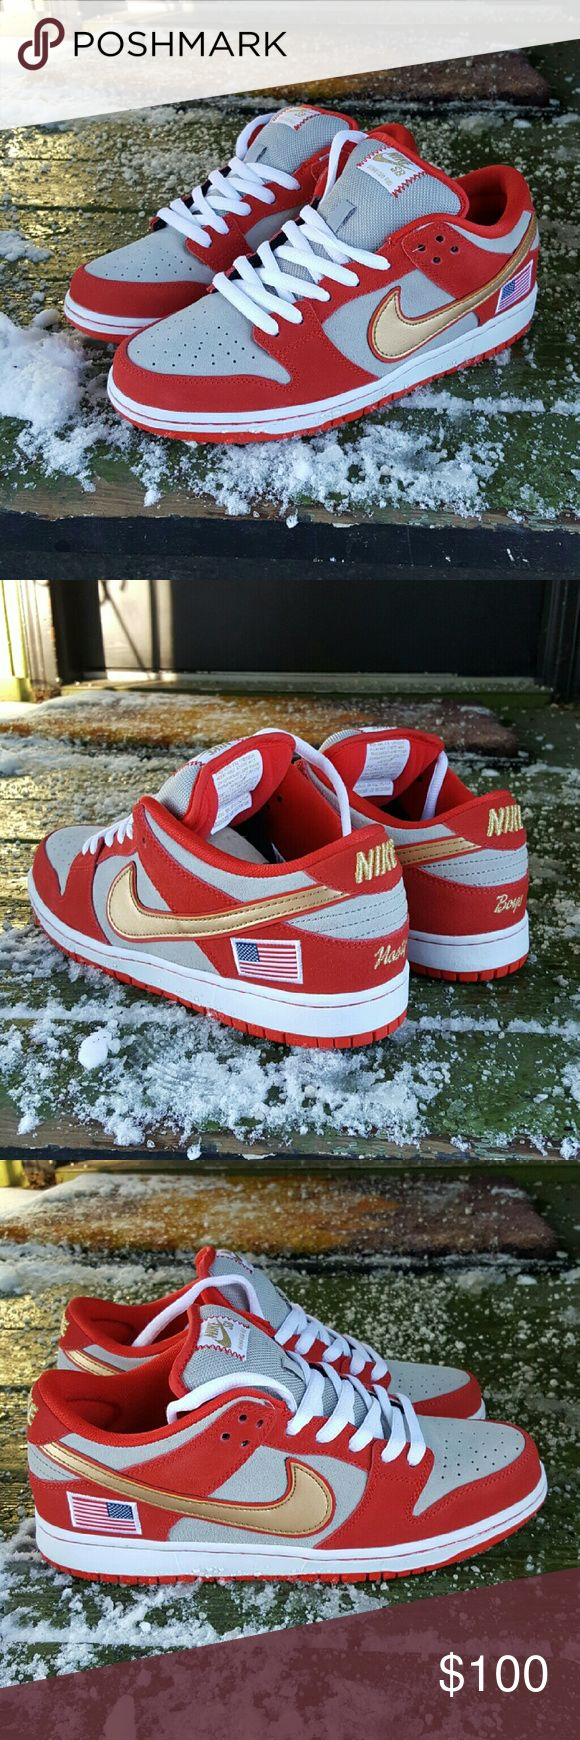 New Nike SB Dunk Low Nasty Boy Anonymous Collab Cincinnati Reds Nike SB Dunks that were to honor the 1990 world series champions. Rare shoe that is extremely high quality, the stitching is flawless and looks amazing. Brand new no box, never worn size 10. Nike Shoes